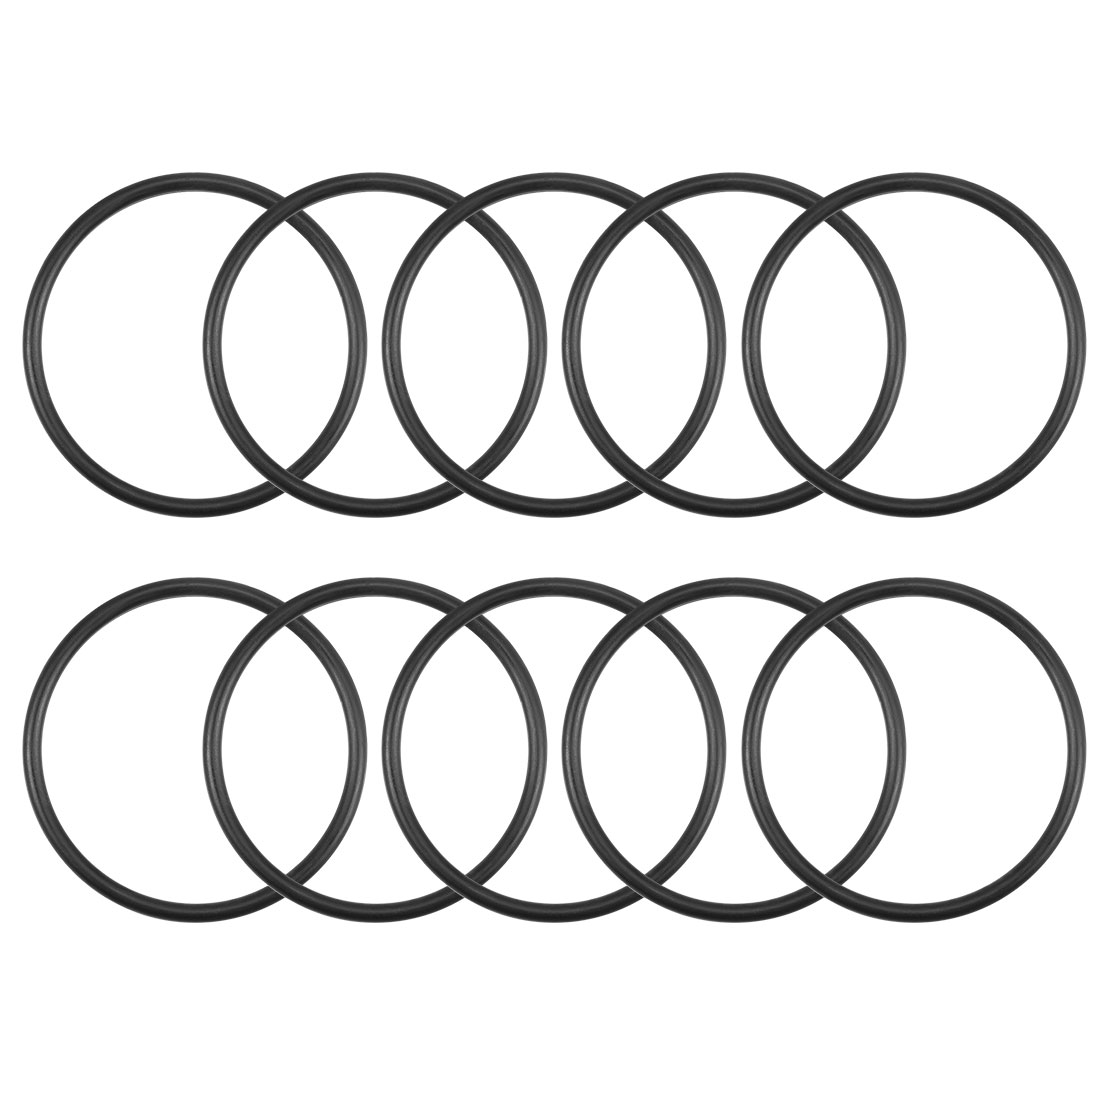 O-Rings Nitrile Rubber 26.5mm x 30.1mm x 1.8mm Round Seal Gasket 10Pcs